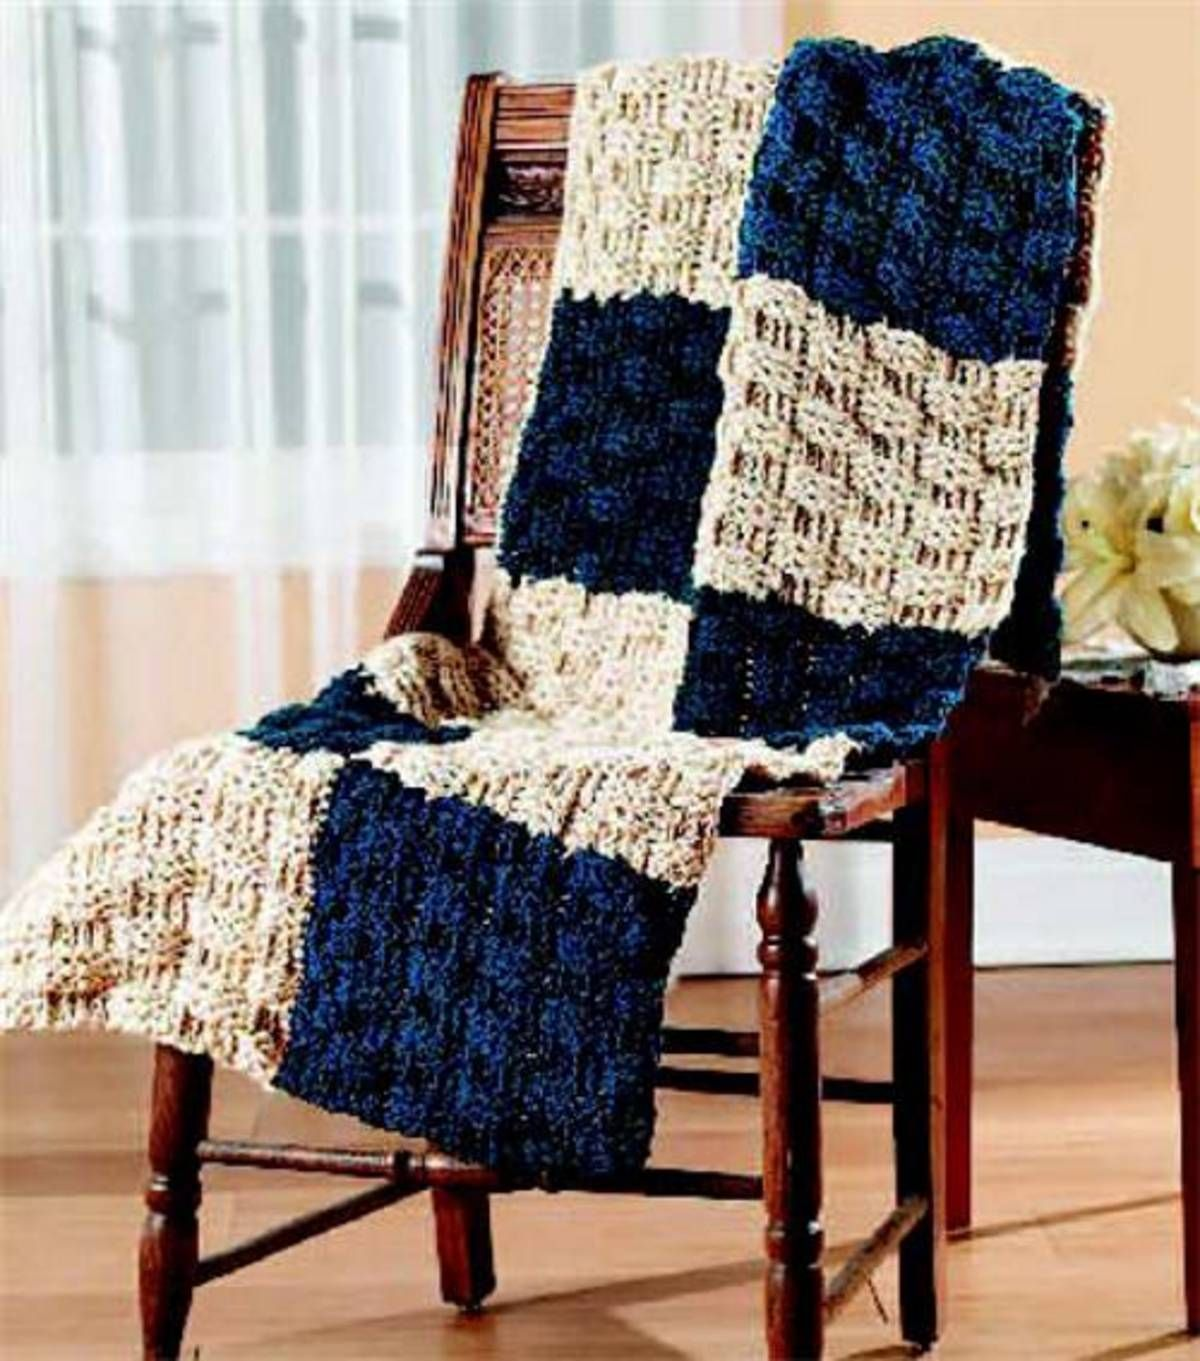 Free pattern from joann create this cozy basketweave afghan free pattern from joann create this cozy basketweave afghan bankloansurffo Images